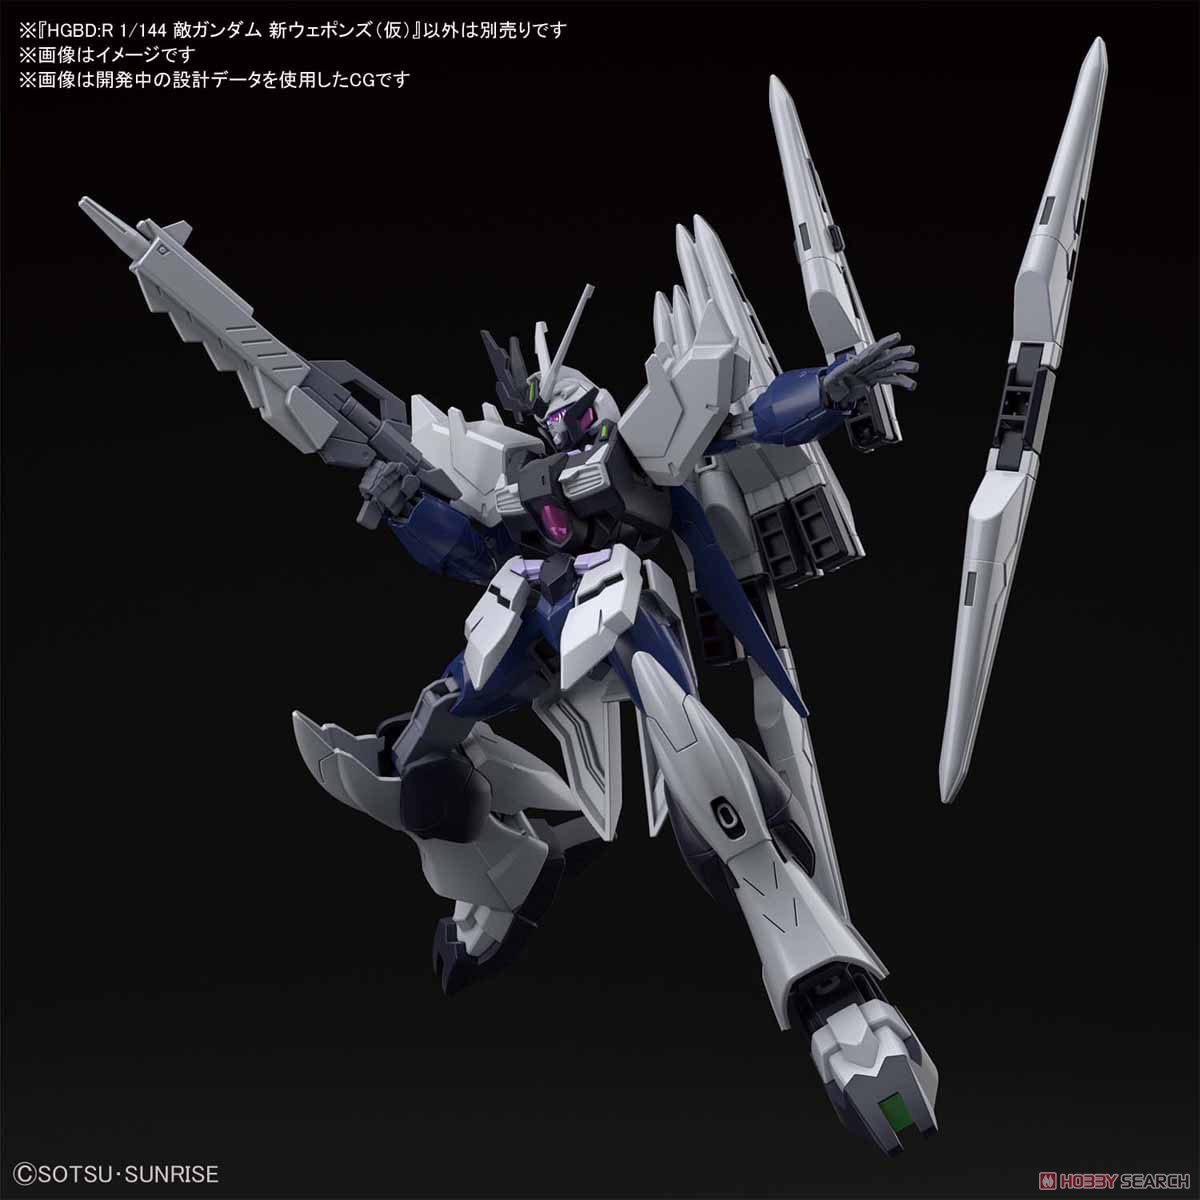 Bandai 1/144 30 HG Fake V Nu Weapons HGBD:R HG Build Divers: R Support Weapon